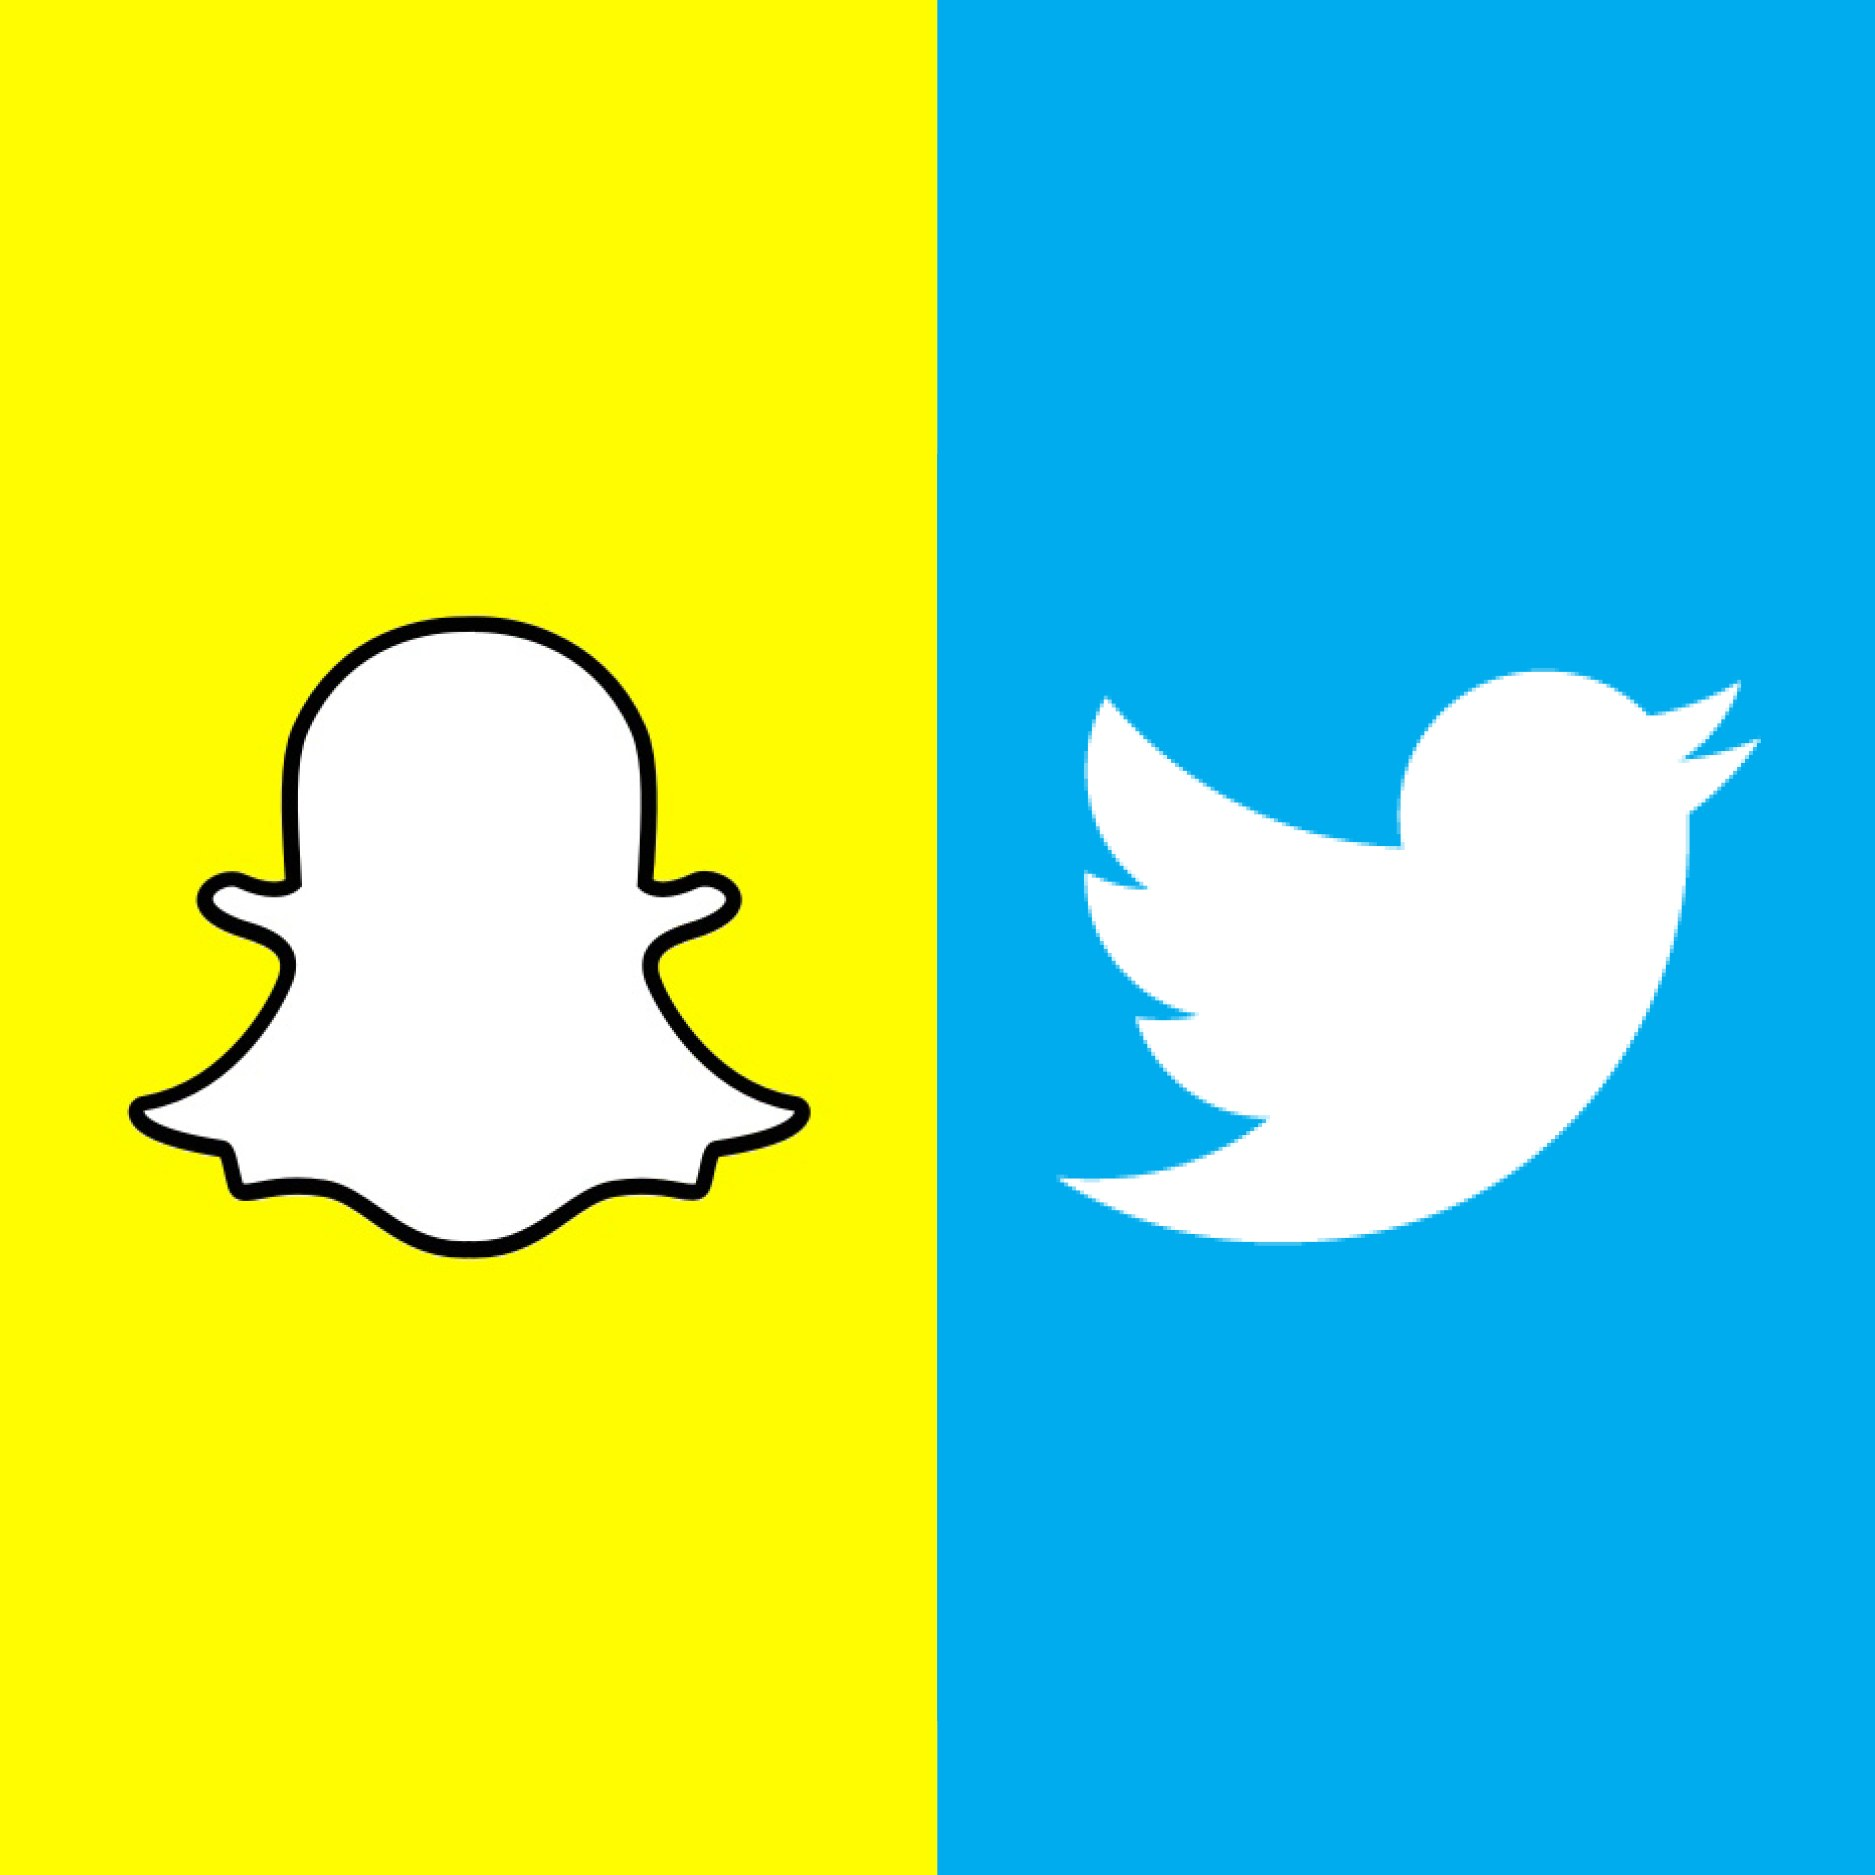 Cover image for Has Snapchat Learned From Twitter's IPO?